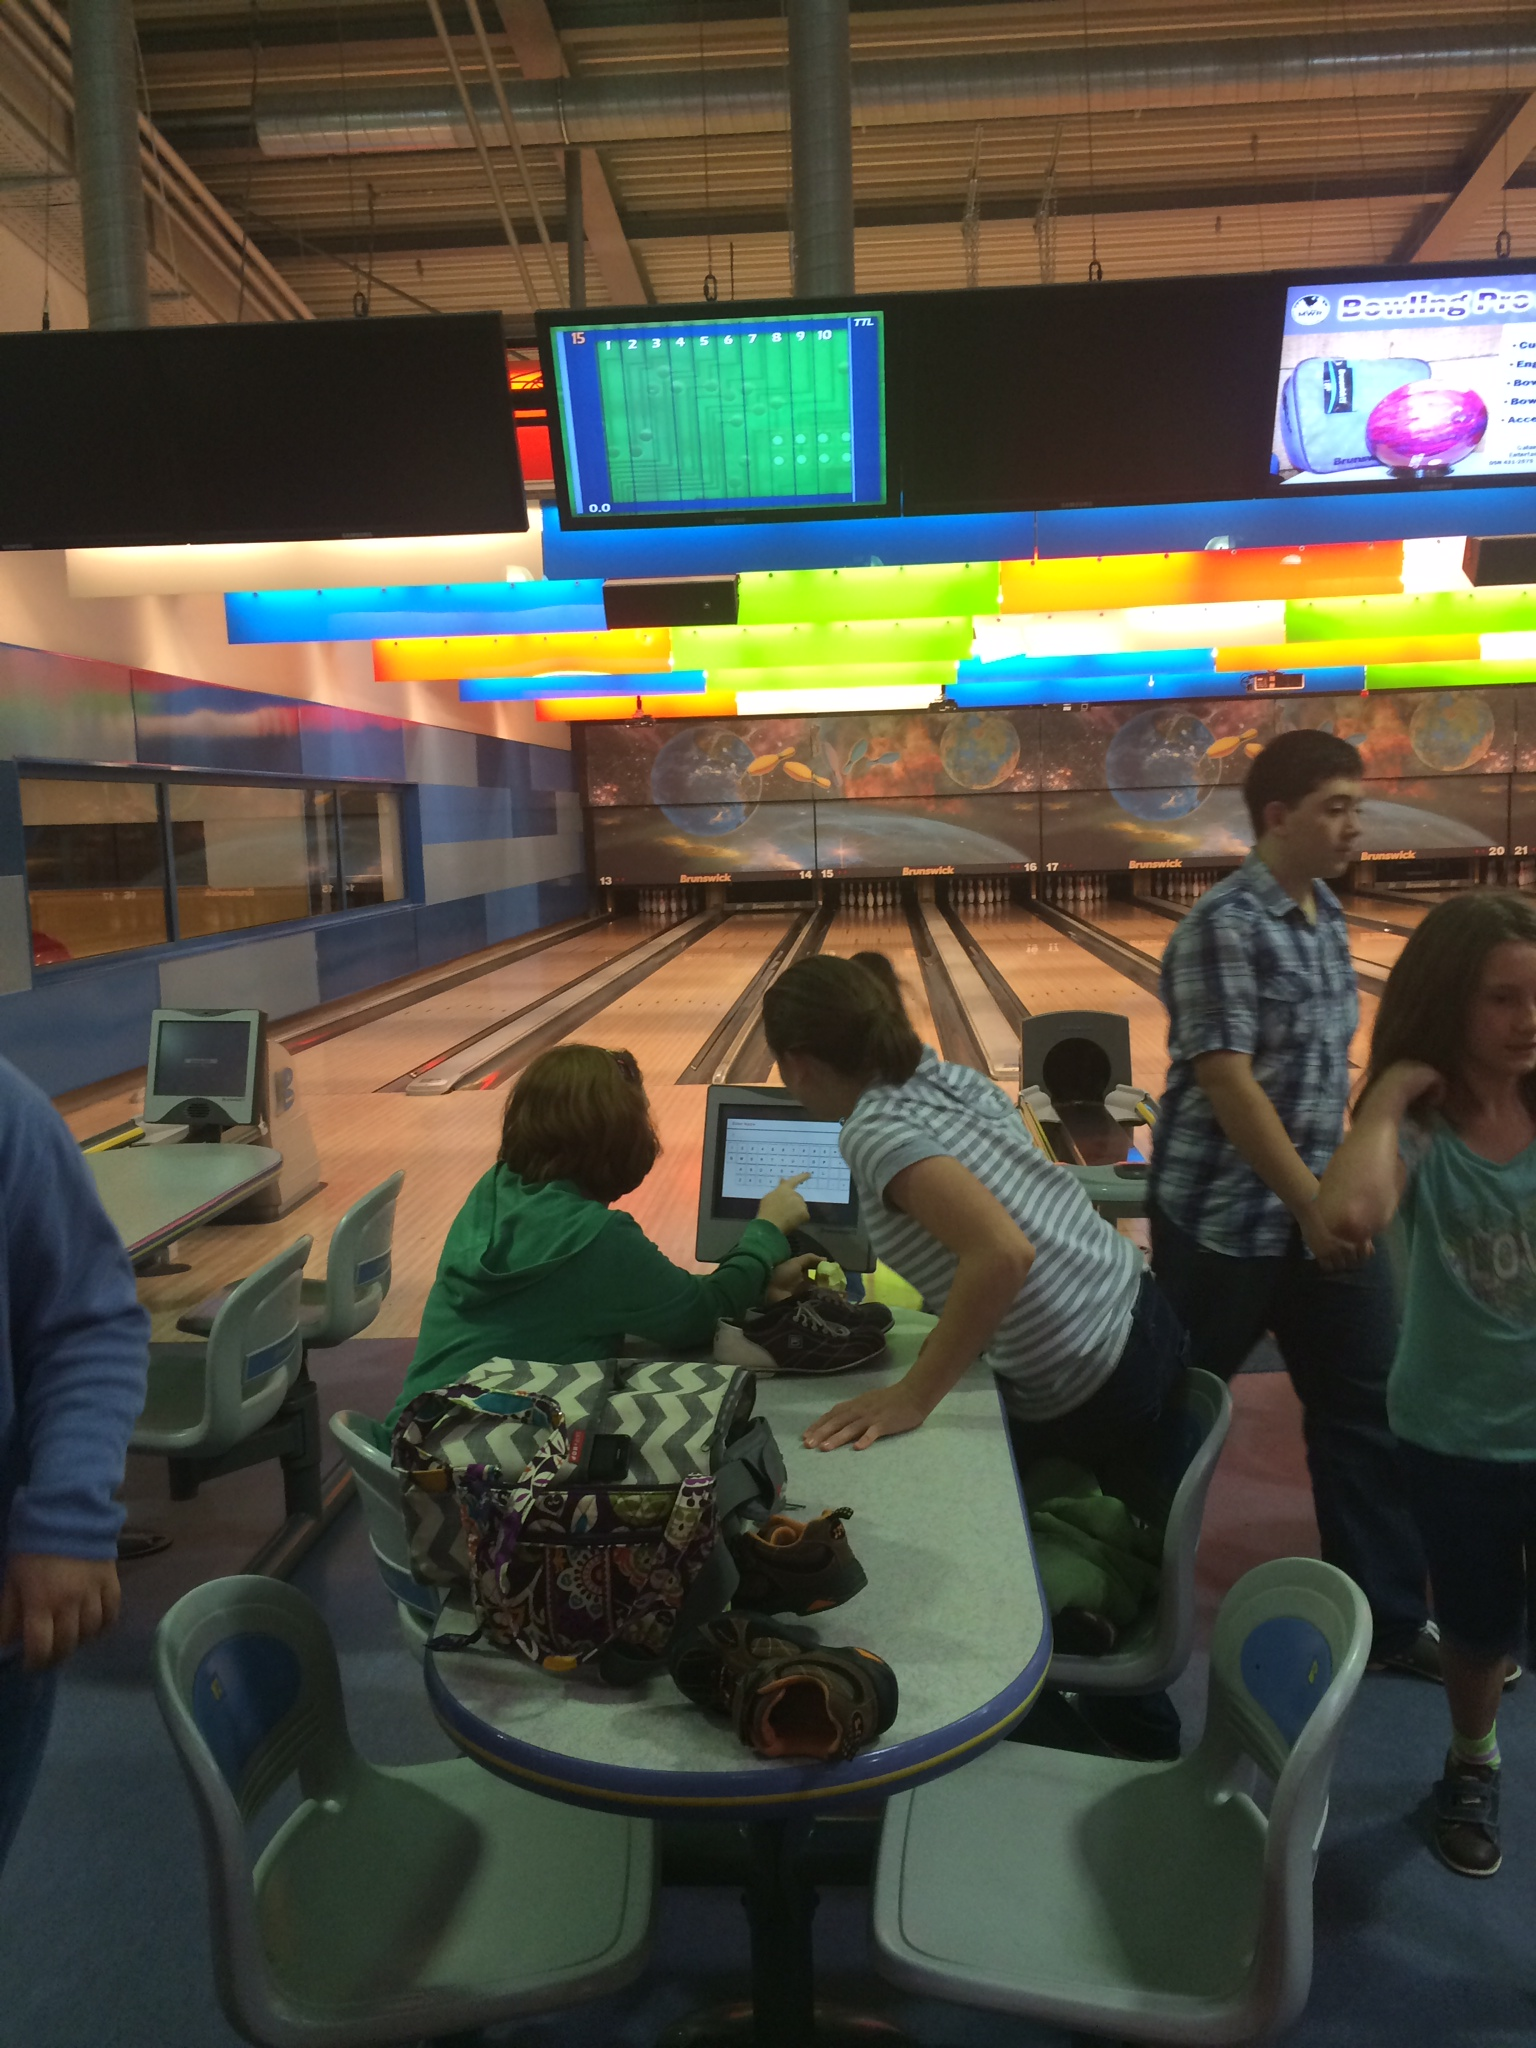 Reflections on our Day homeschooling; and Bowling at Night